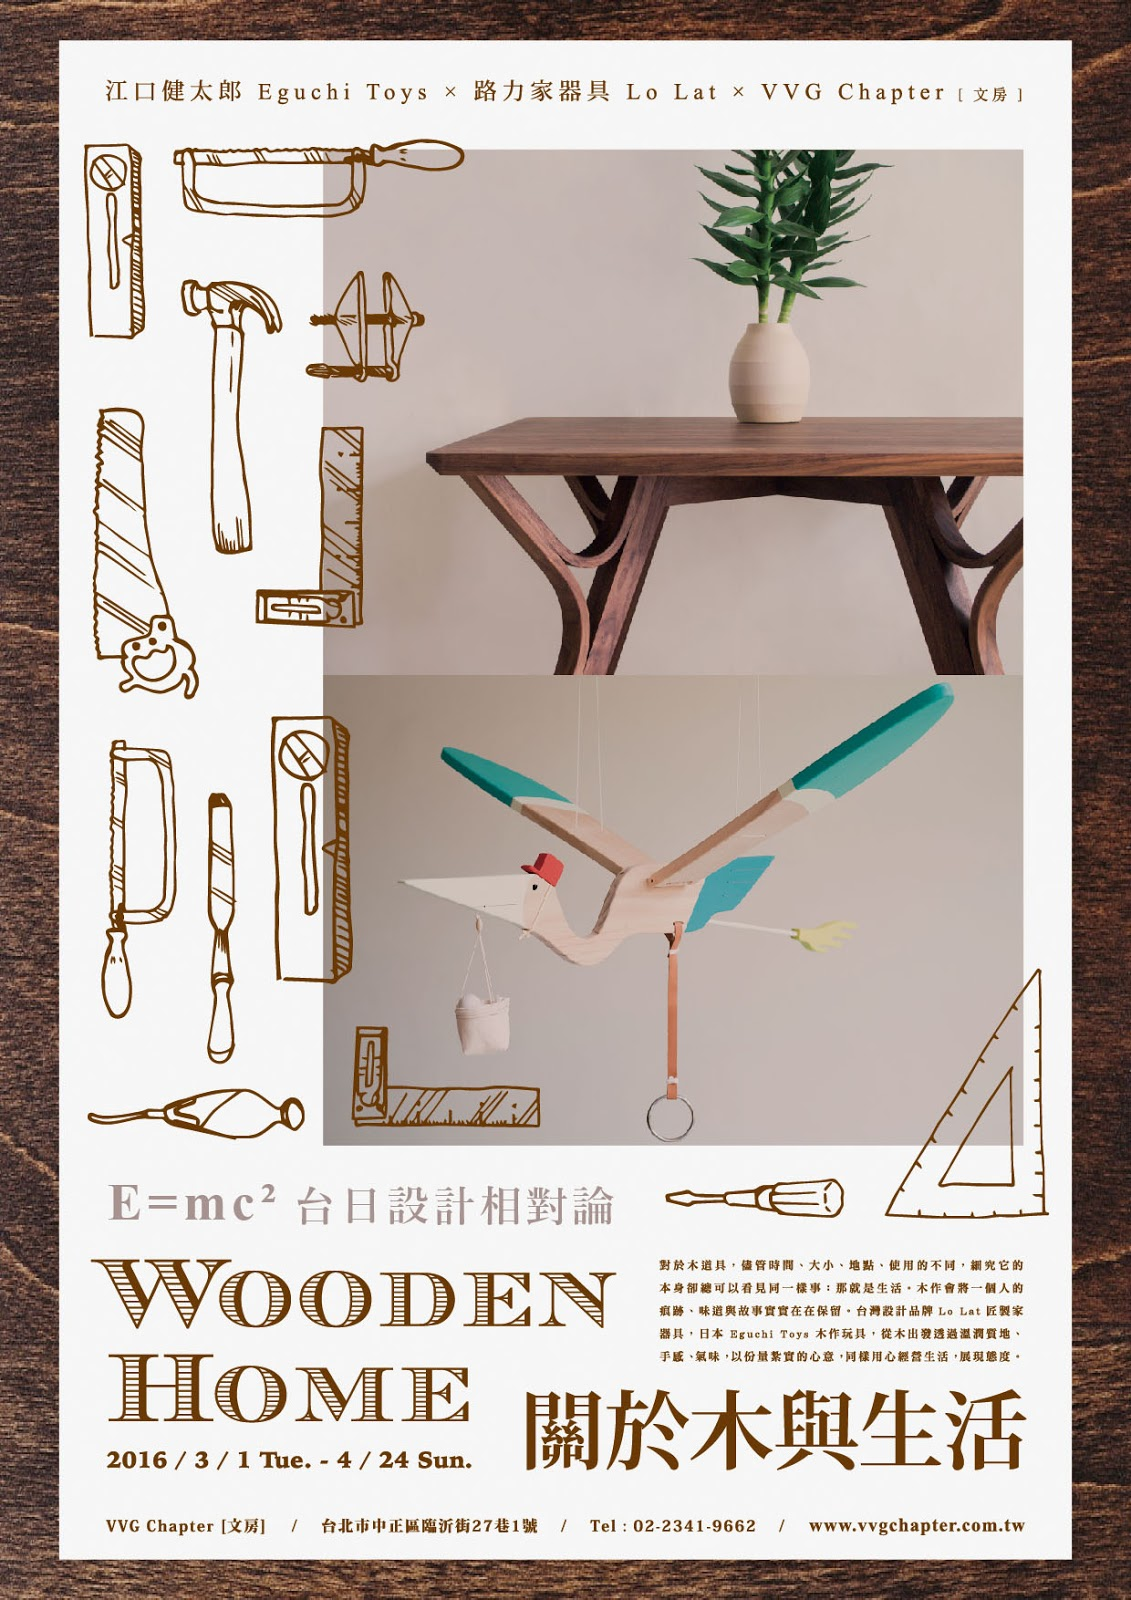 Wooden Home 關於木與生活